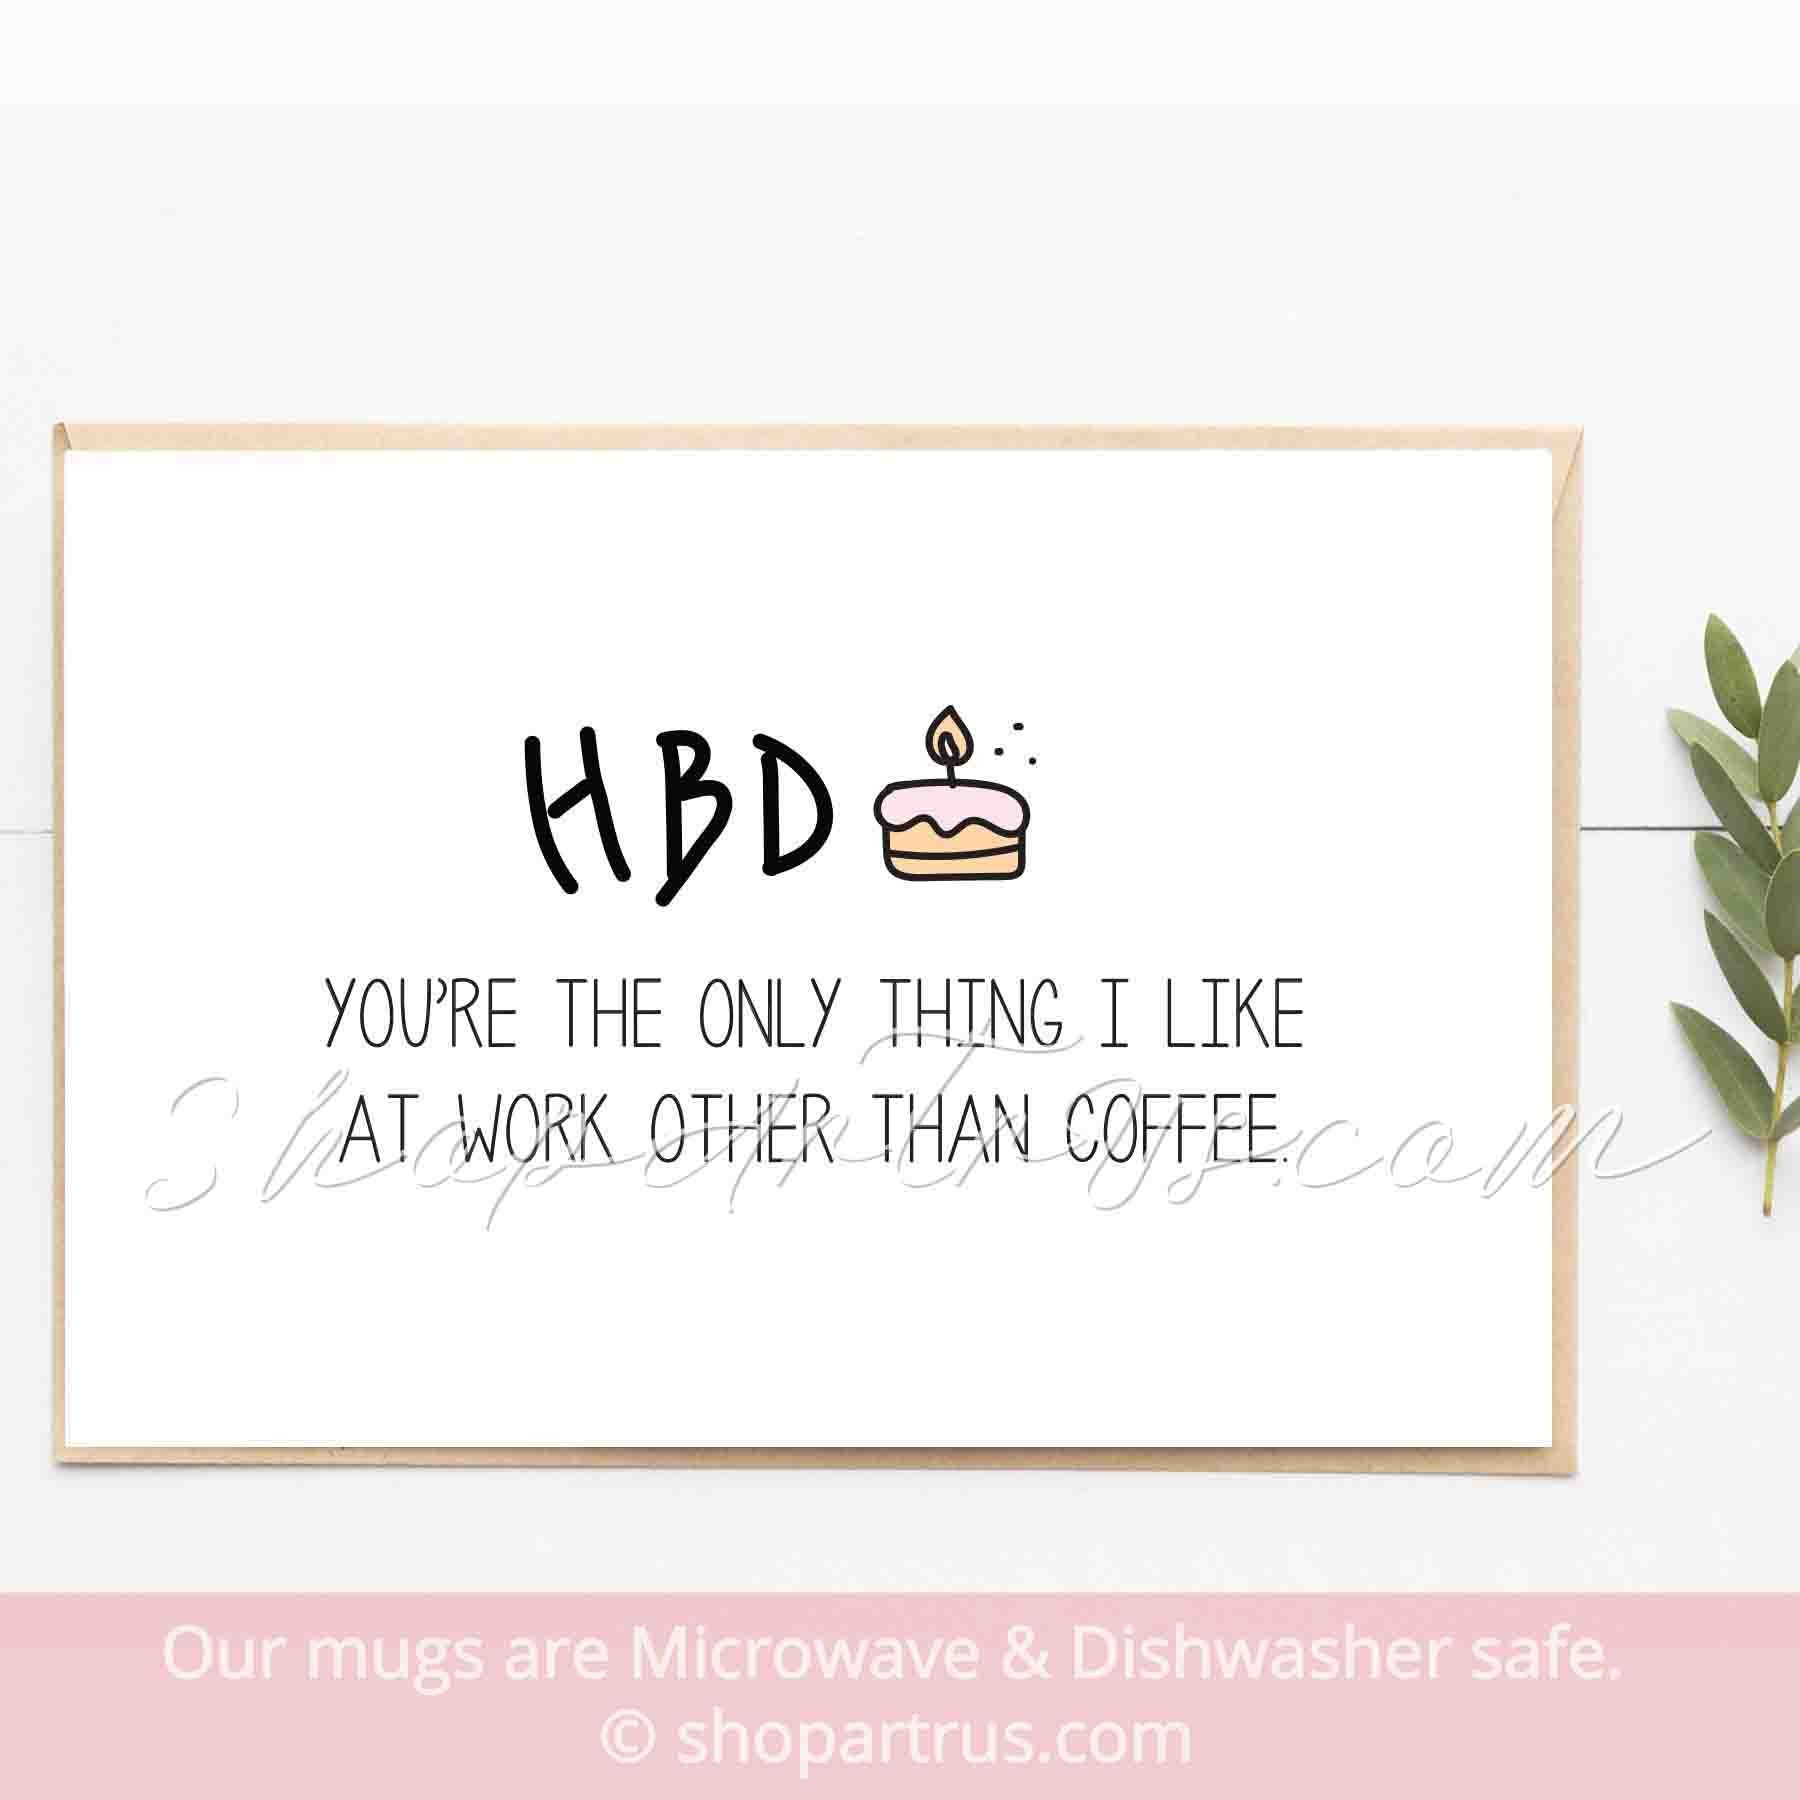 Coworker Birthday Card Funny Birthday Card Snarky Birthday Card Happy Birthday To My Favorite Coworker Colleague Birthday Card Gc347 Birthday Card Sayings Coworkers Birthday Happy Birthday Coworker